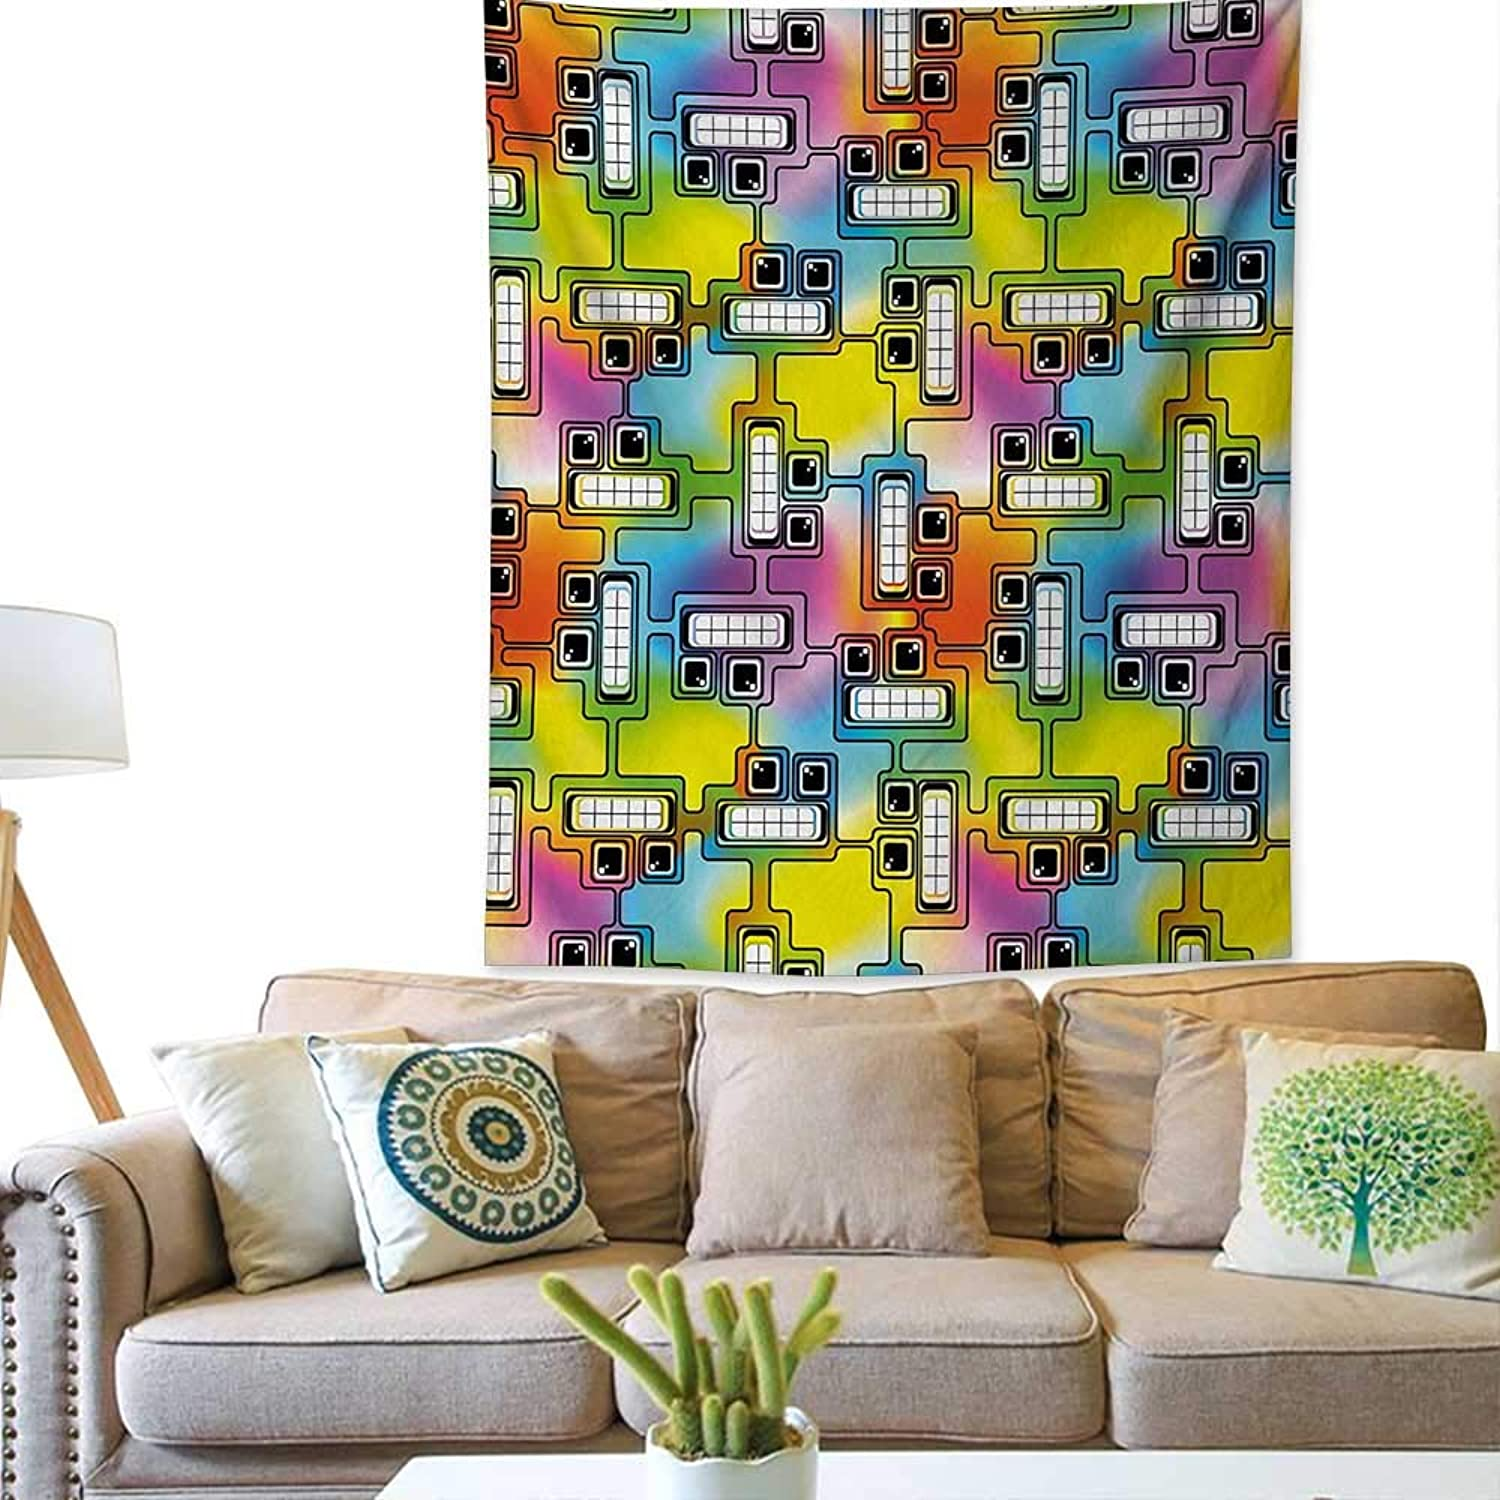 Bybyhome colorfulBedroom tapestryHippie Digital Fun Characters with Eyes and Teeth Video Games Artwork PatternTapestry Throwing Blanket 57W x 74L INCHMulticolor